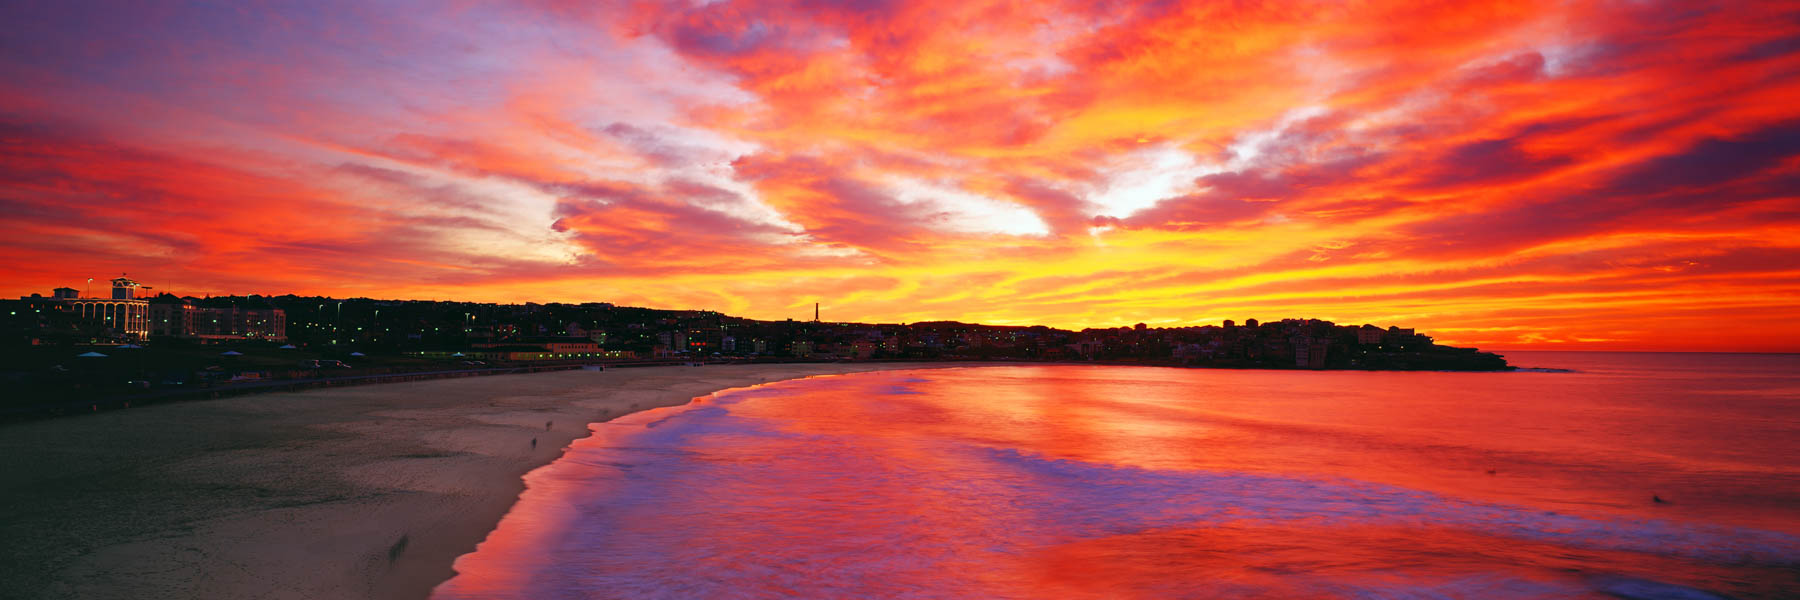 A brilliant red and orange sunrise over Bondi Beach, Sydney, NSW, Australia.